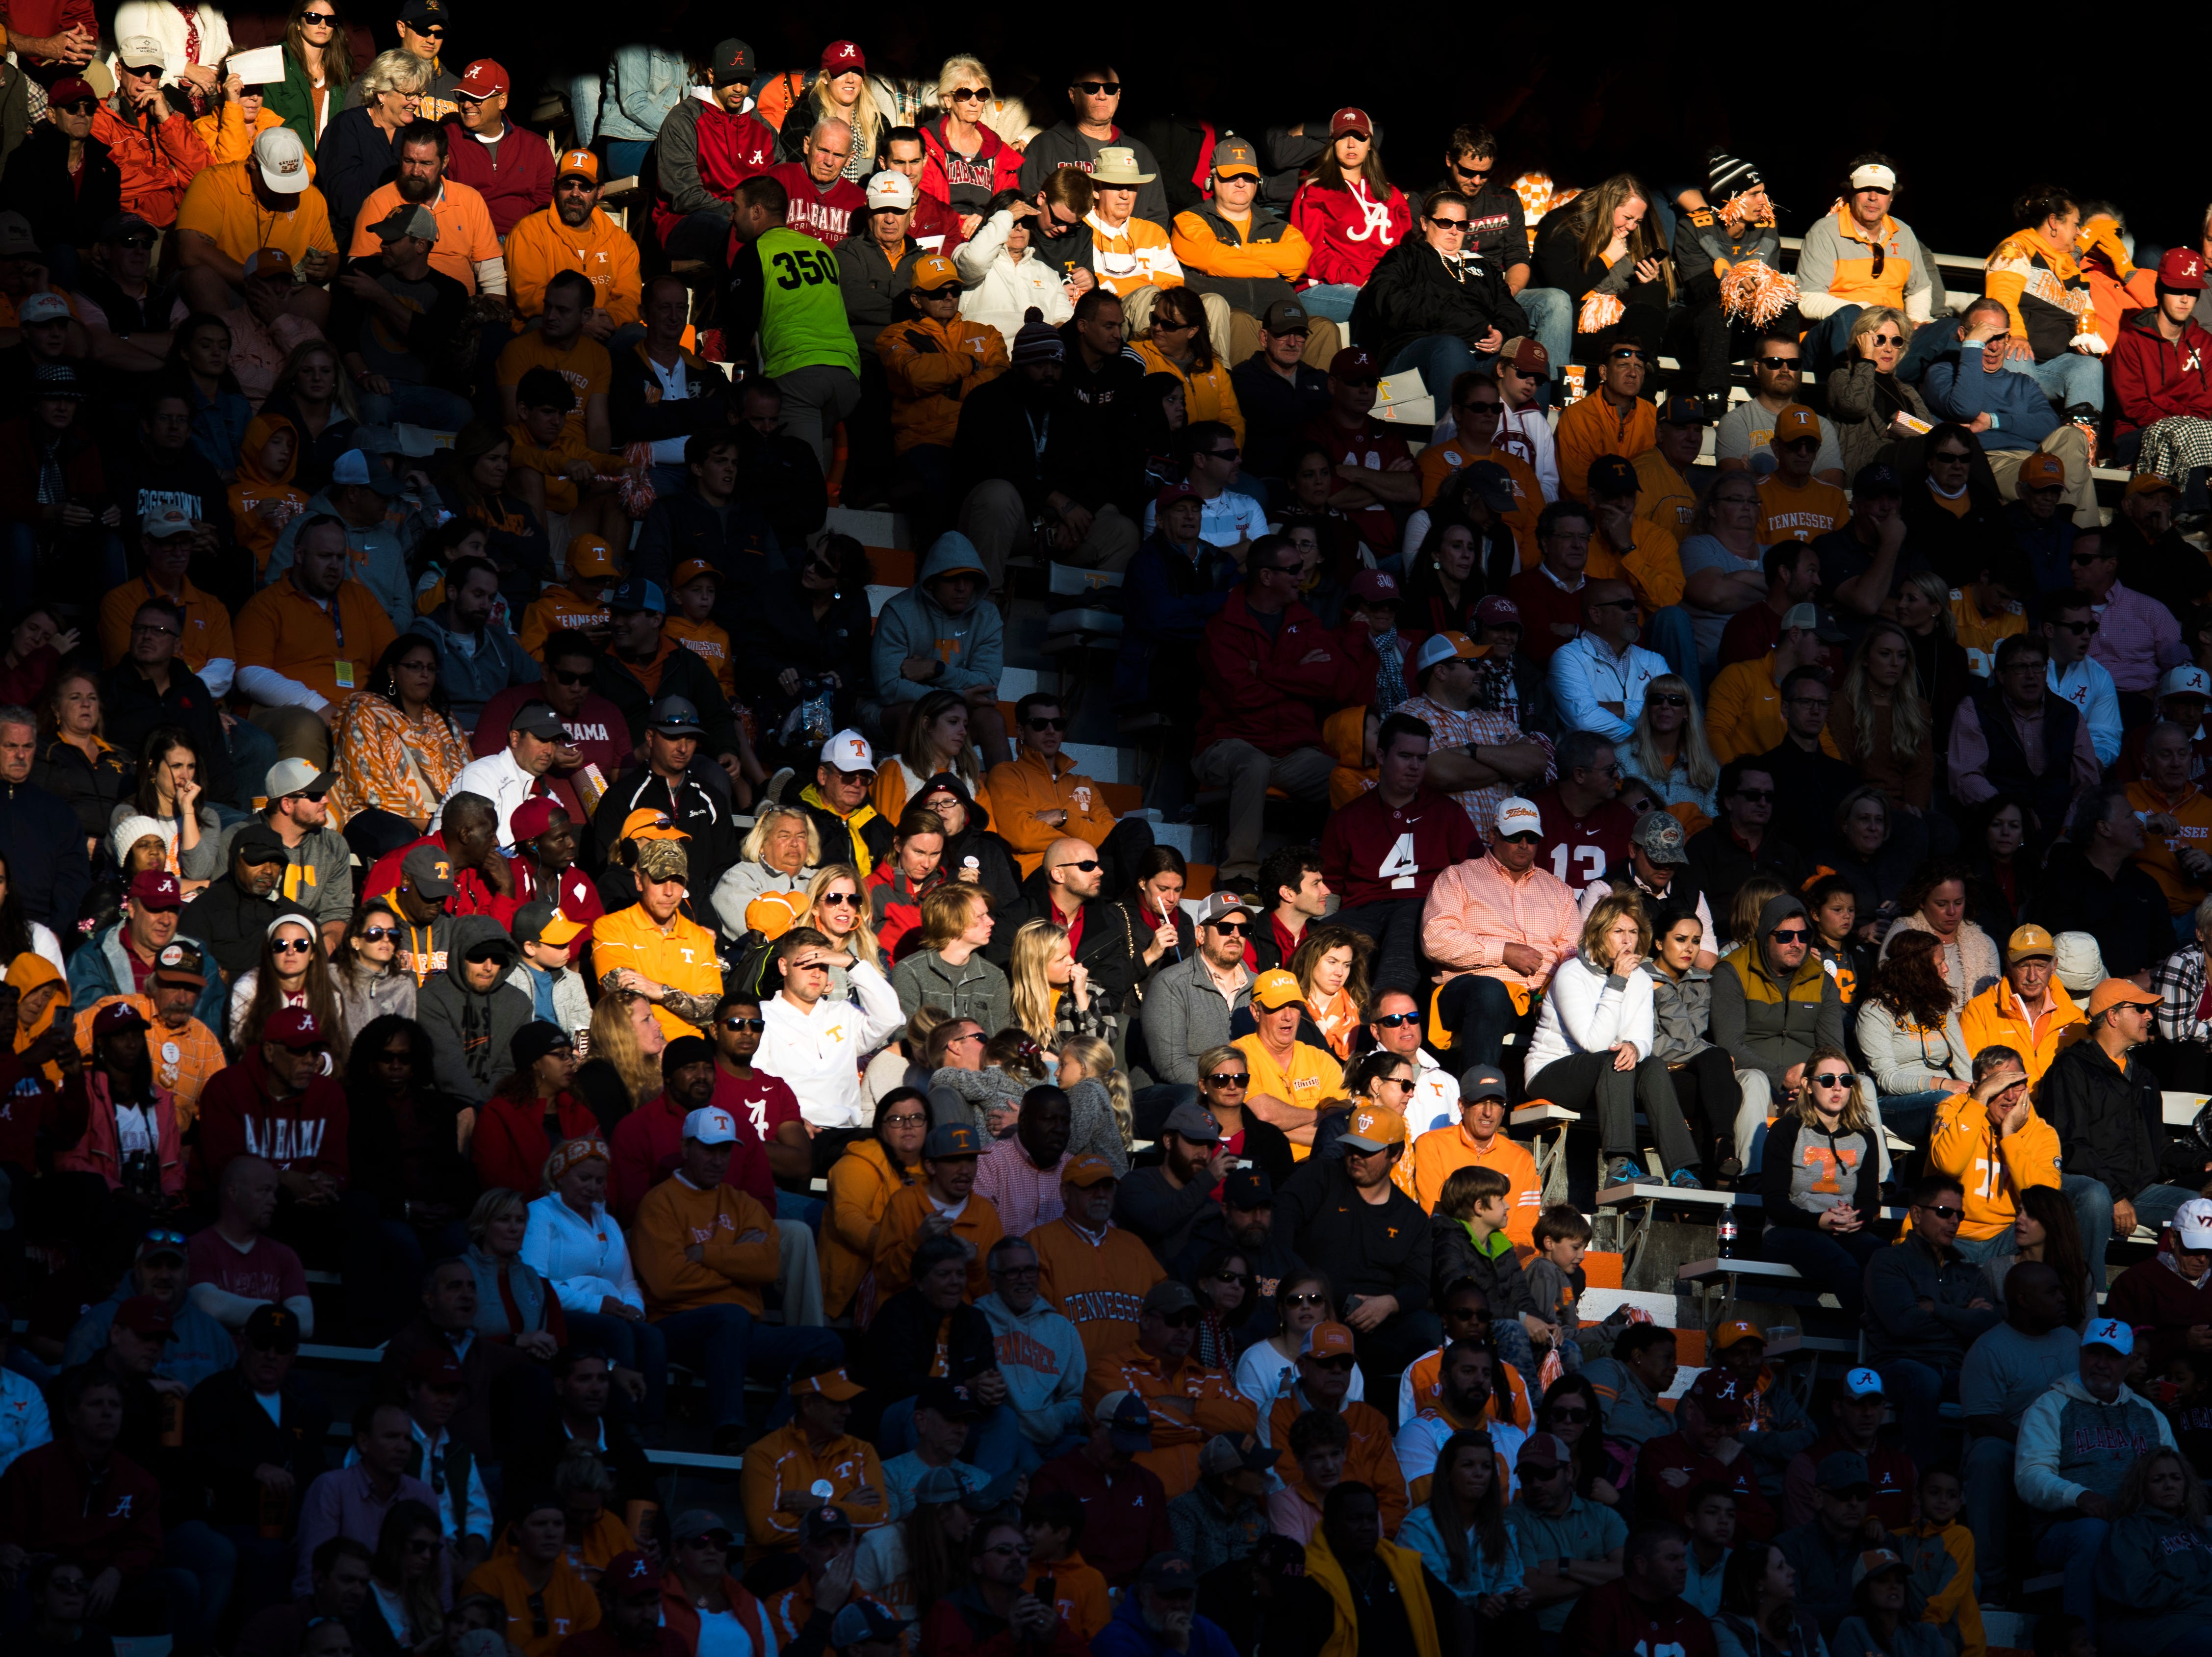 Sunlight falls on the stands during a game between Tennessee and Alabama at Neyland Stadium in Knoxville, Tennessee on Saturday, October 20, 2018.